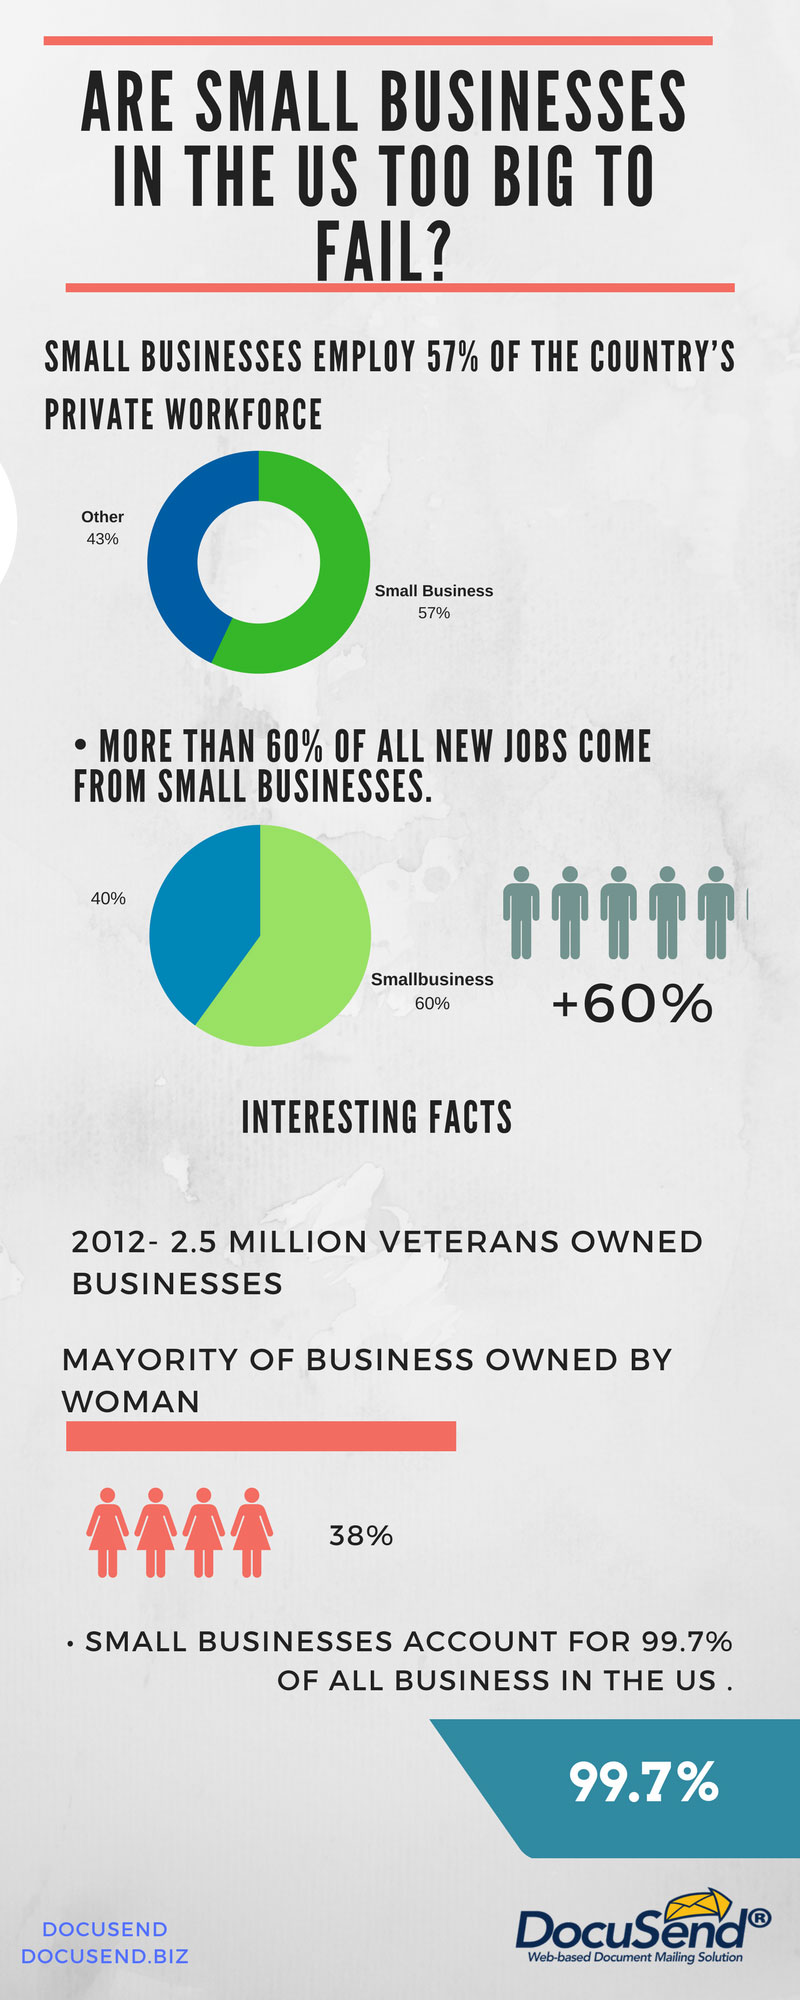 Are Small Businesses in the US Too Big to Fail?